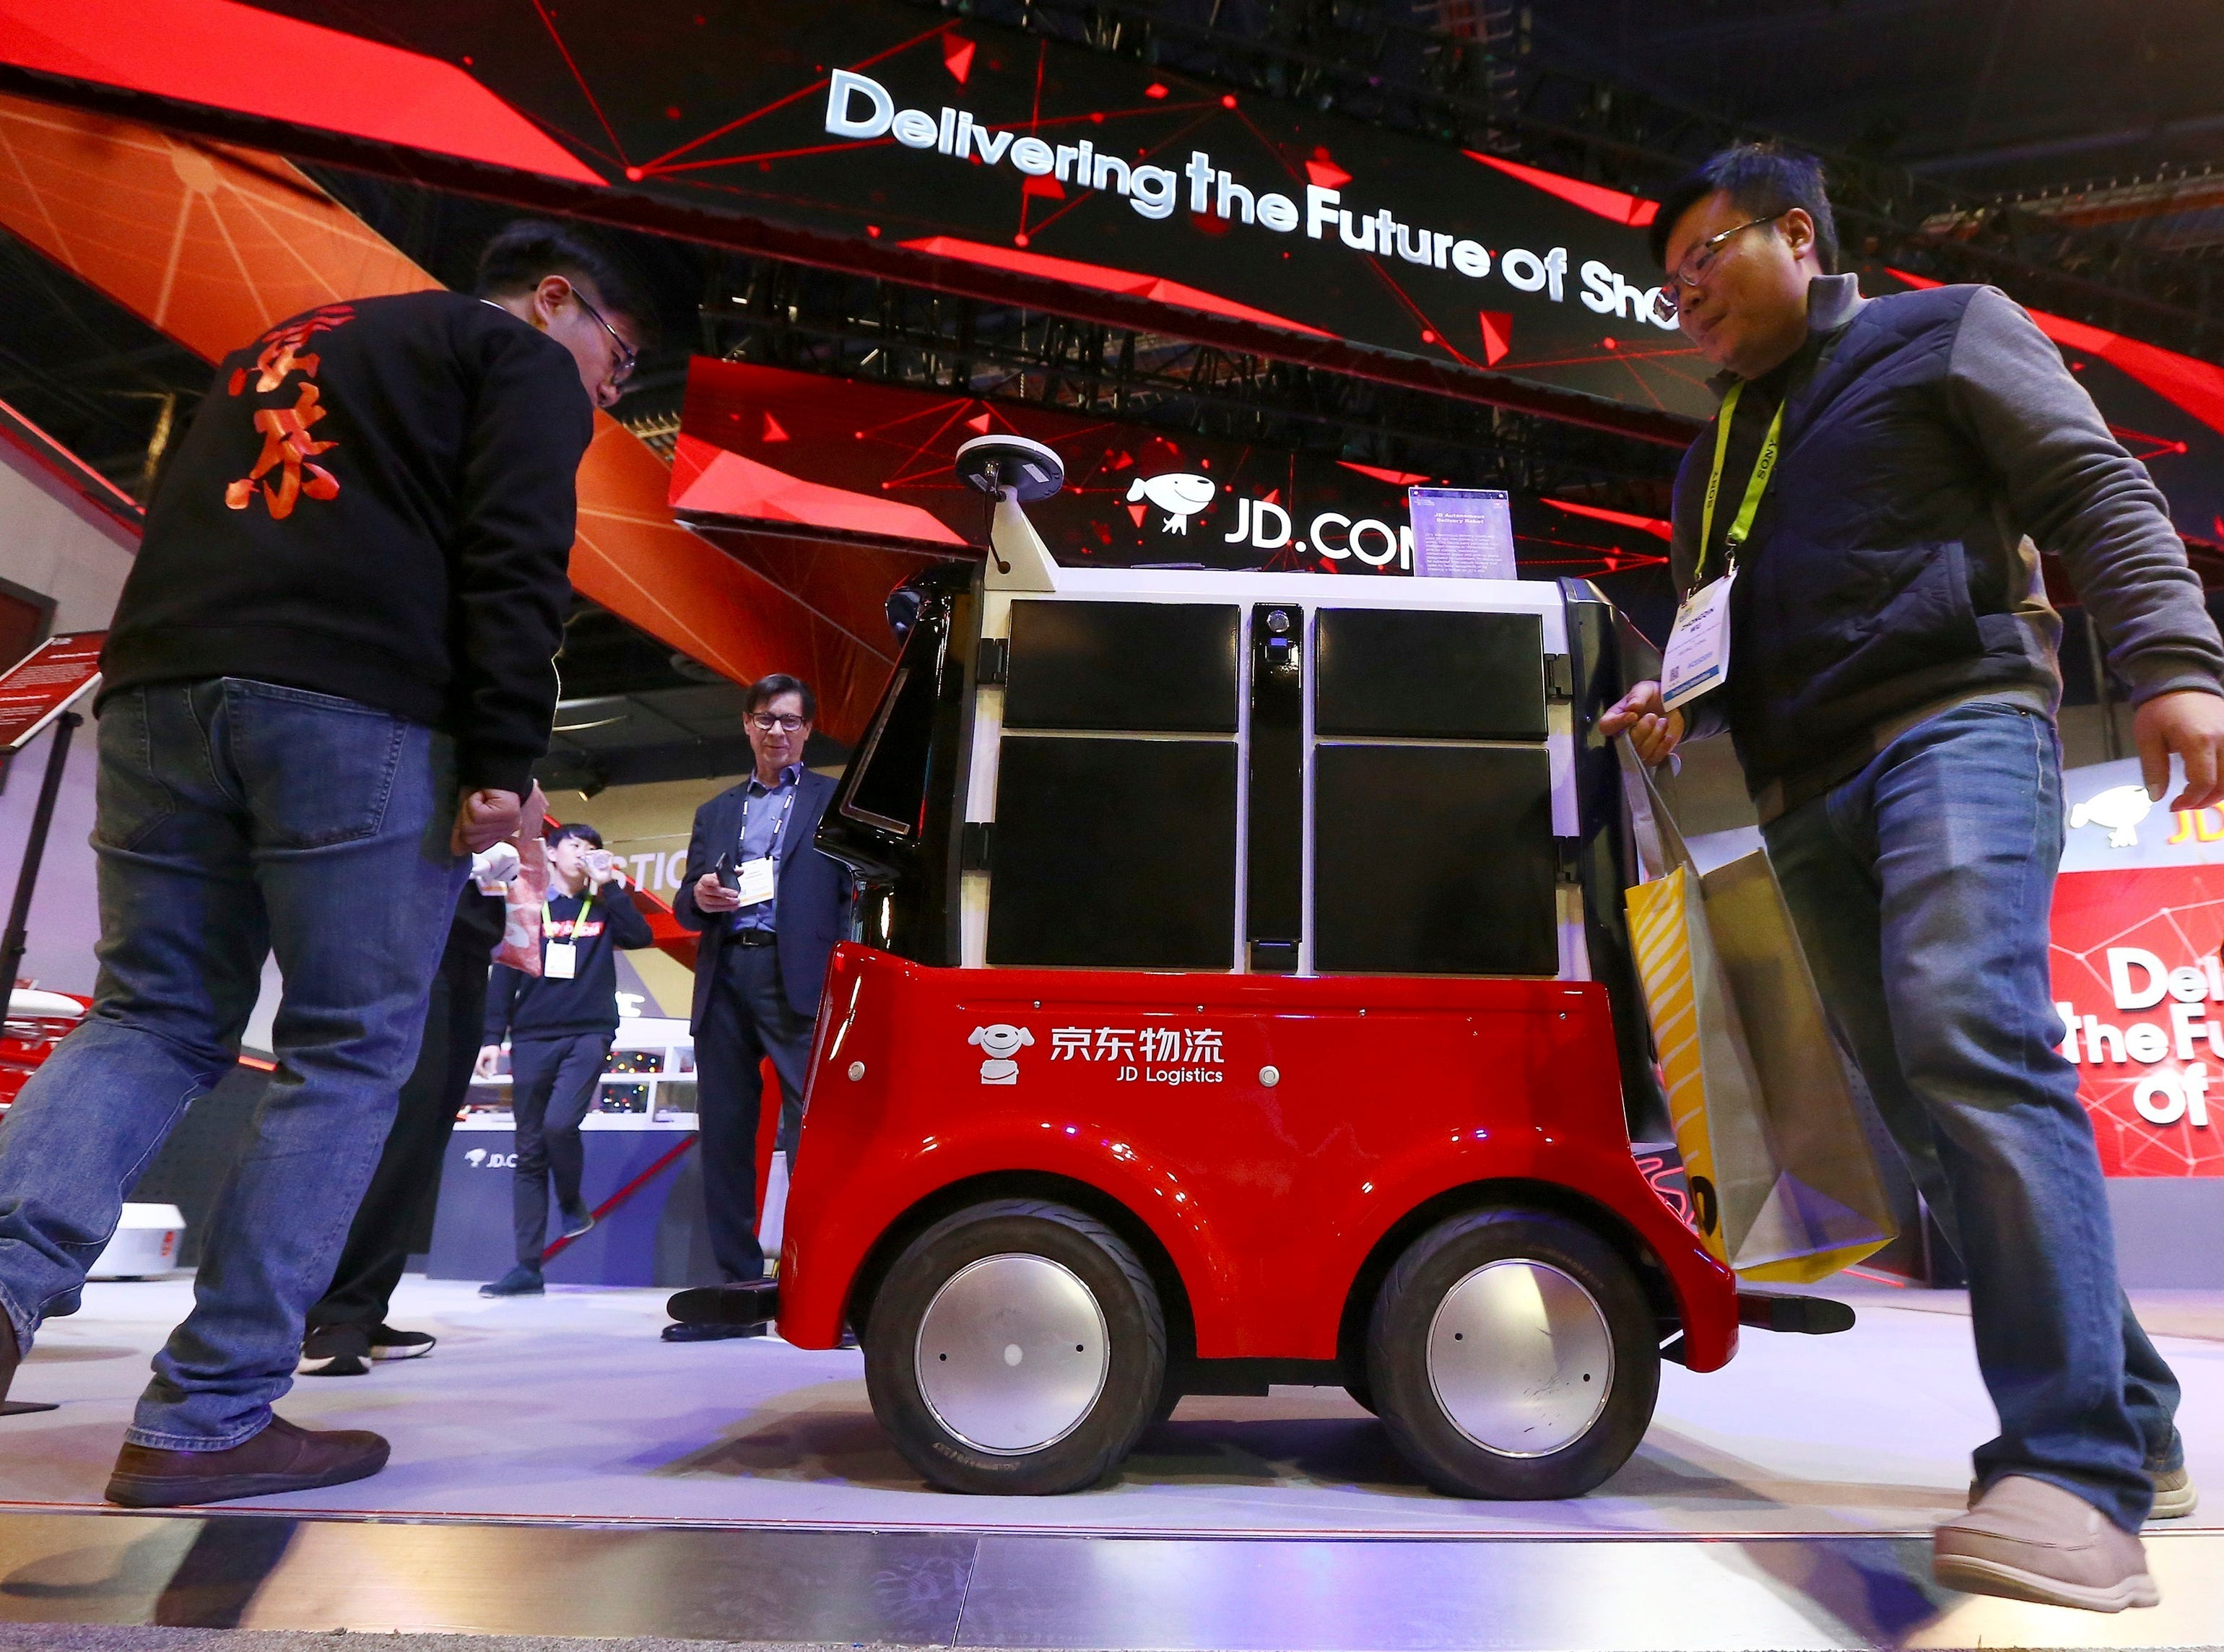 CES attendees check out the autonomous delivery robot vehicle at the JD.com booth at CES International on Tuesday, Jan. 8, 2019, in Las Vegas.